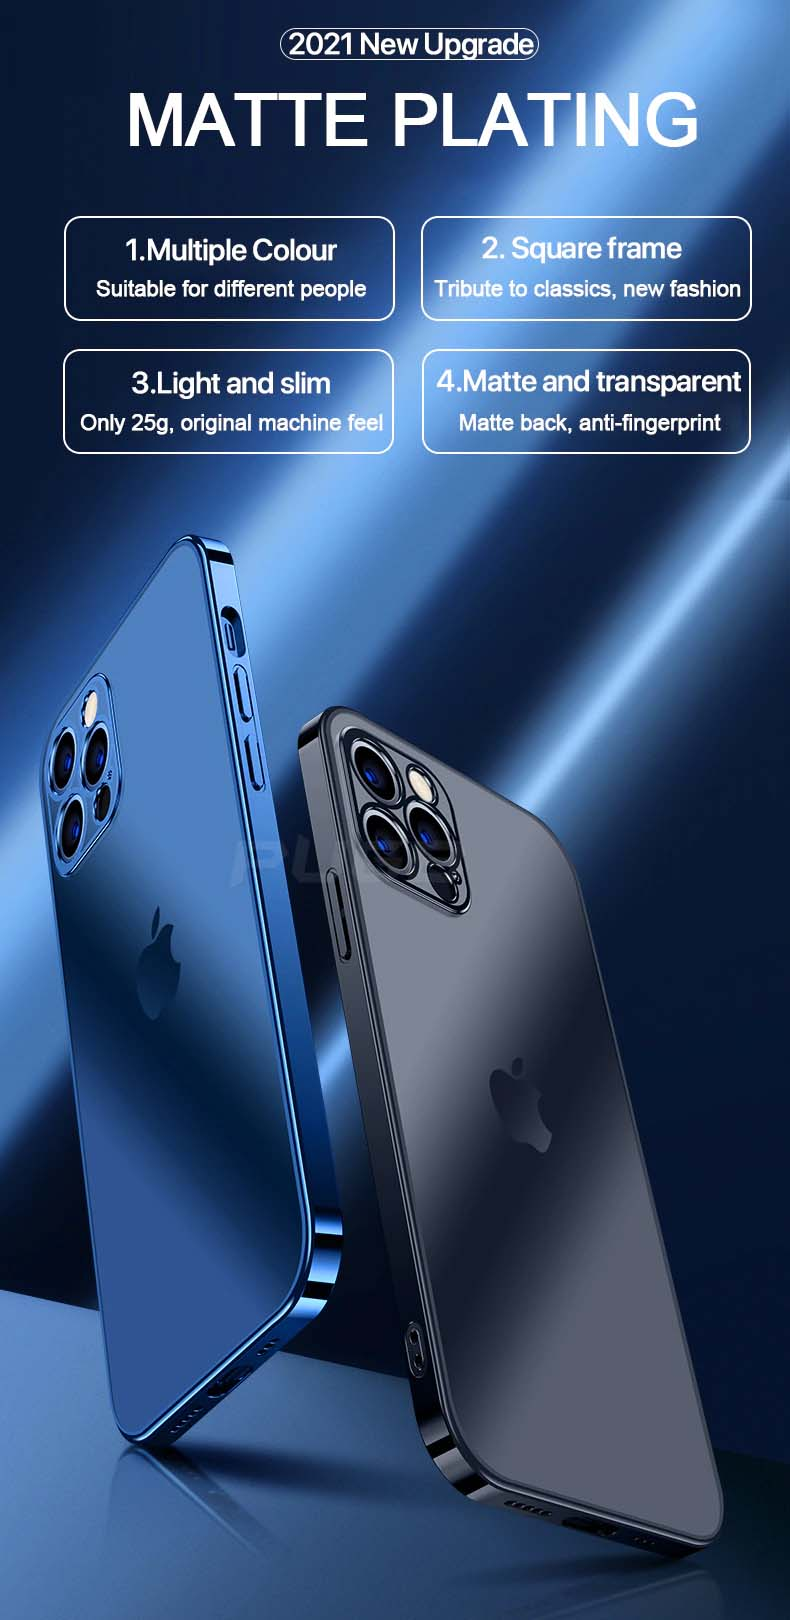 Luxury Square Frame Matte Plating Soft Silicone Transparent Case for iPhone 11 12 13 Pro Max Mini XR X XS 7 8 Plus SE 2020 Shockproof Cover